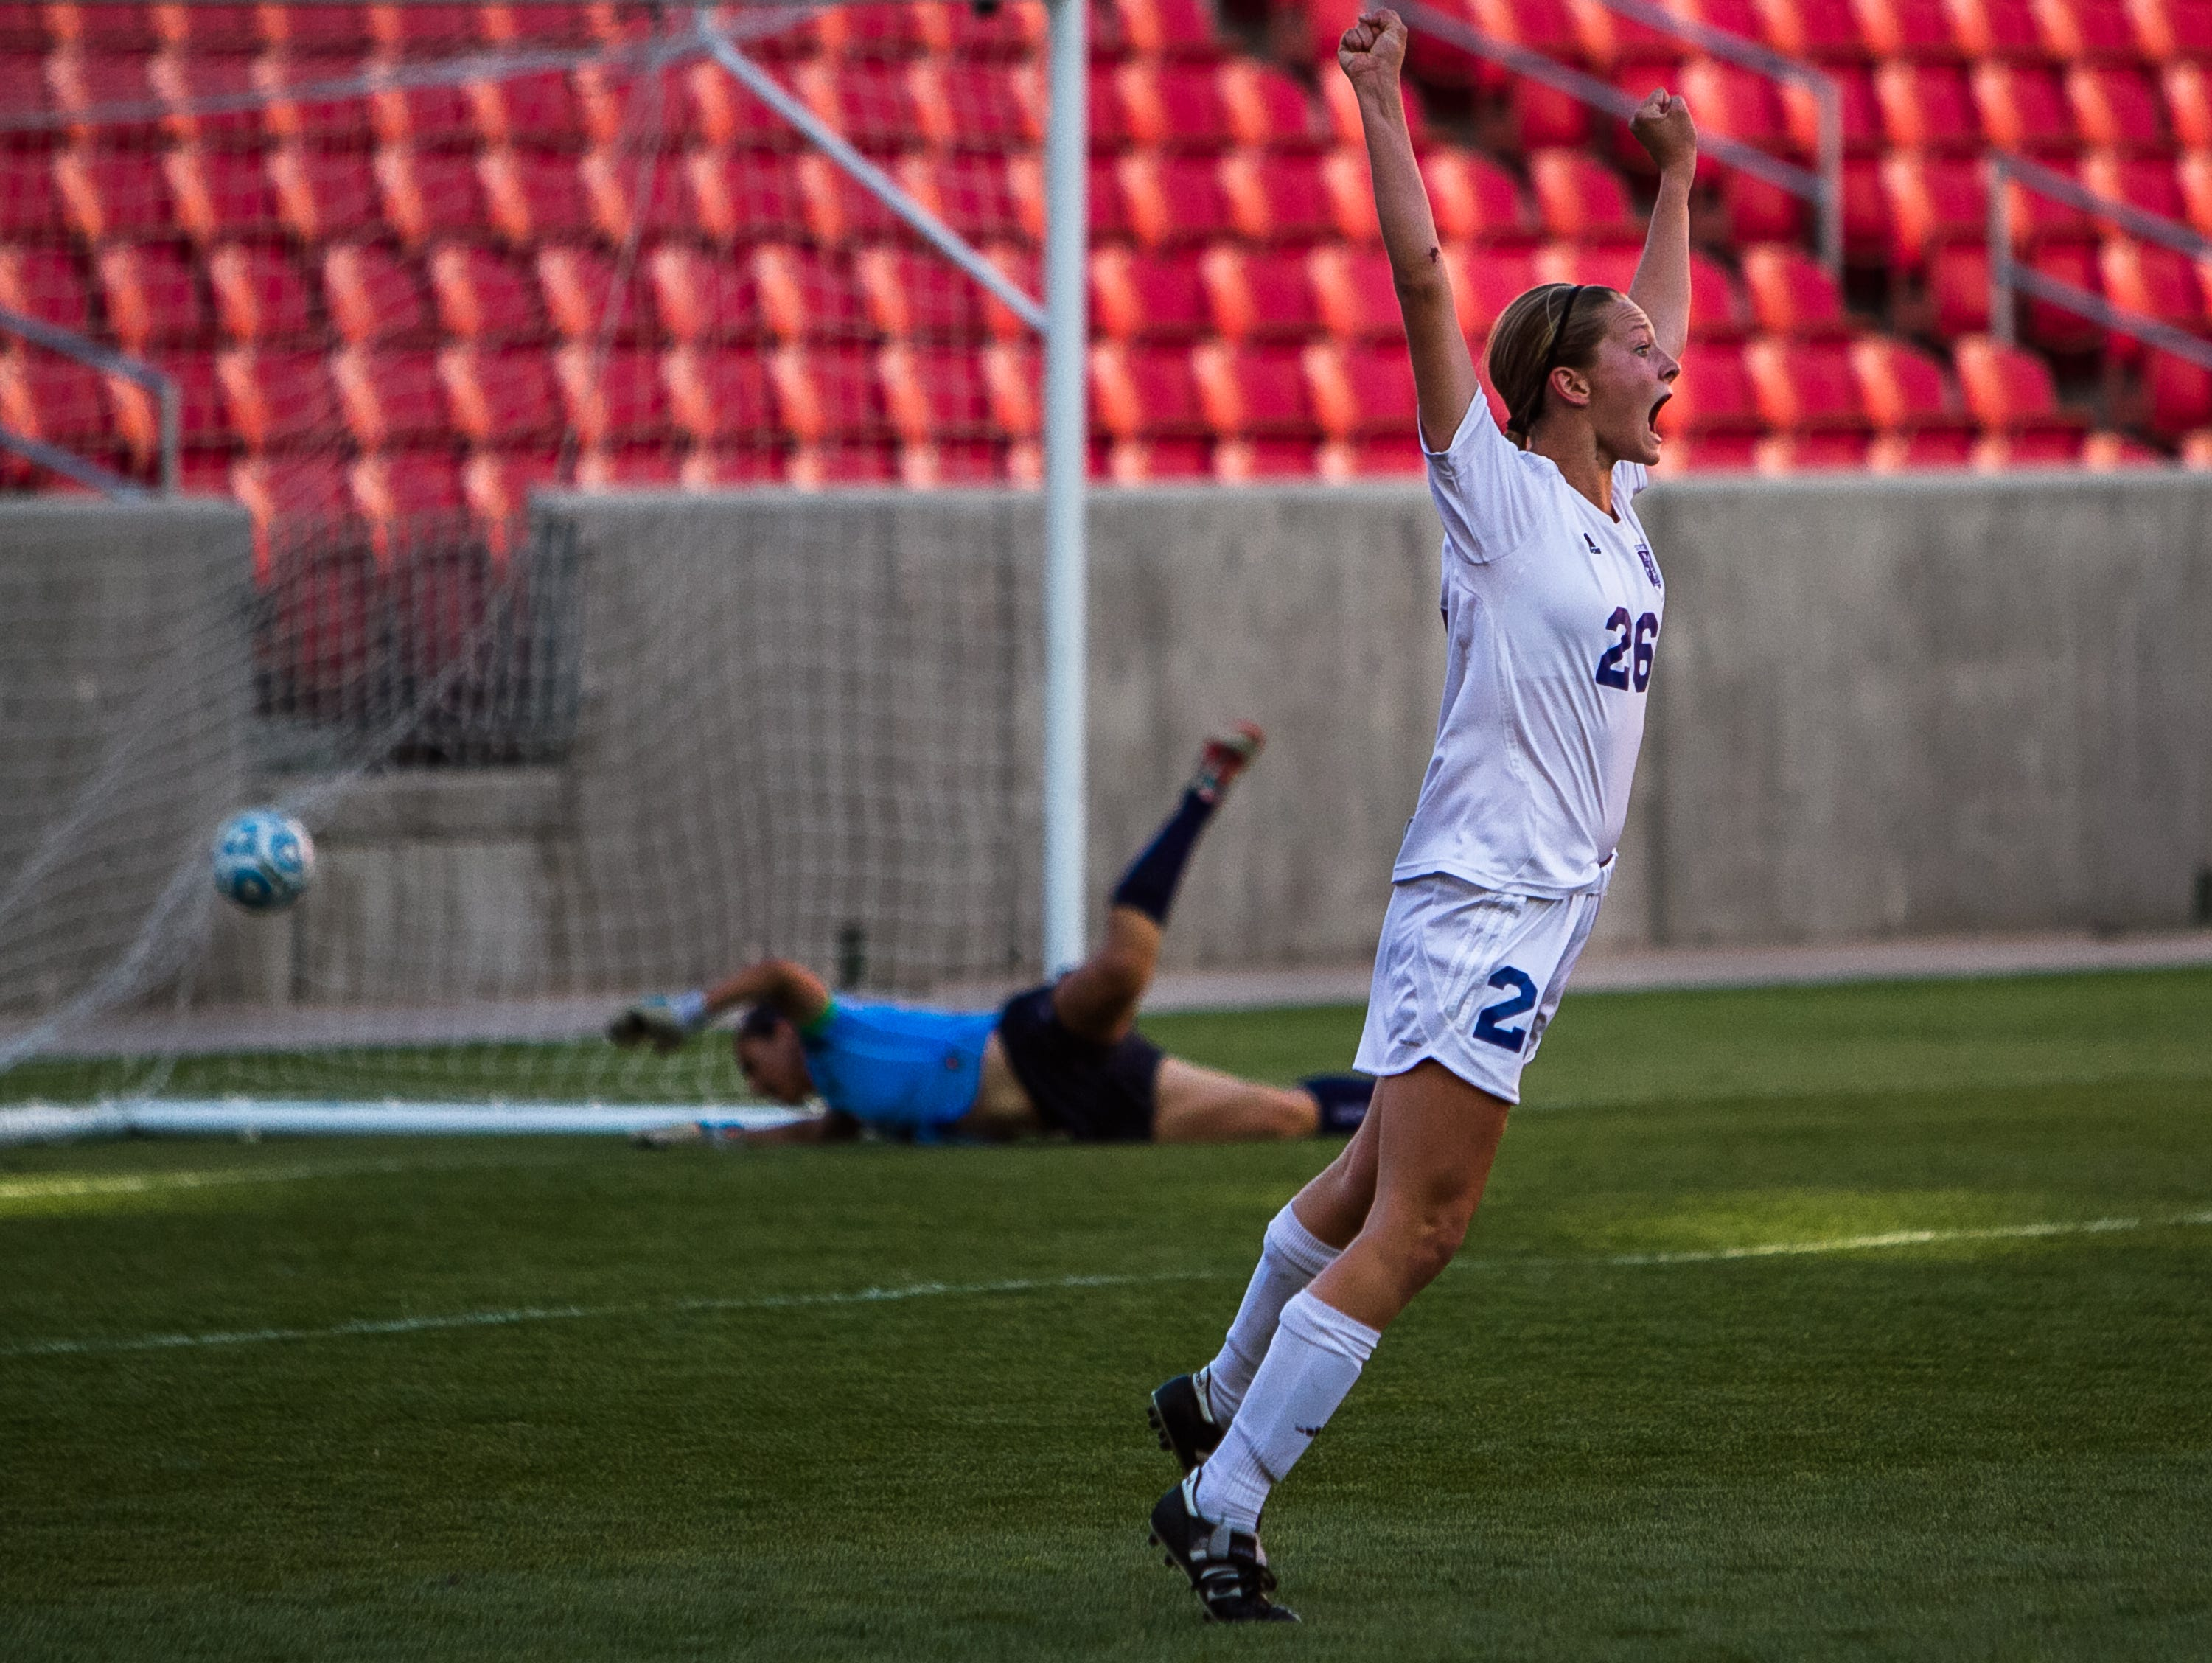 Dixie's Elizabeth Durrant celebrates as a freshman two years ago against Juan Diego during the Flyers' state championship run.